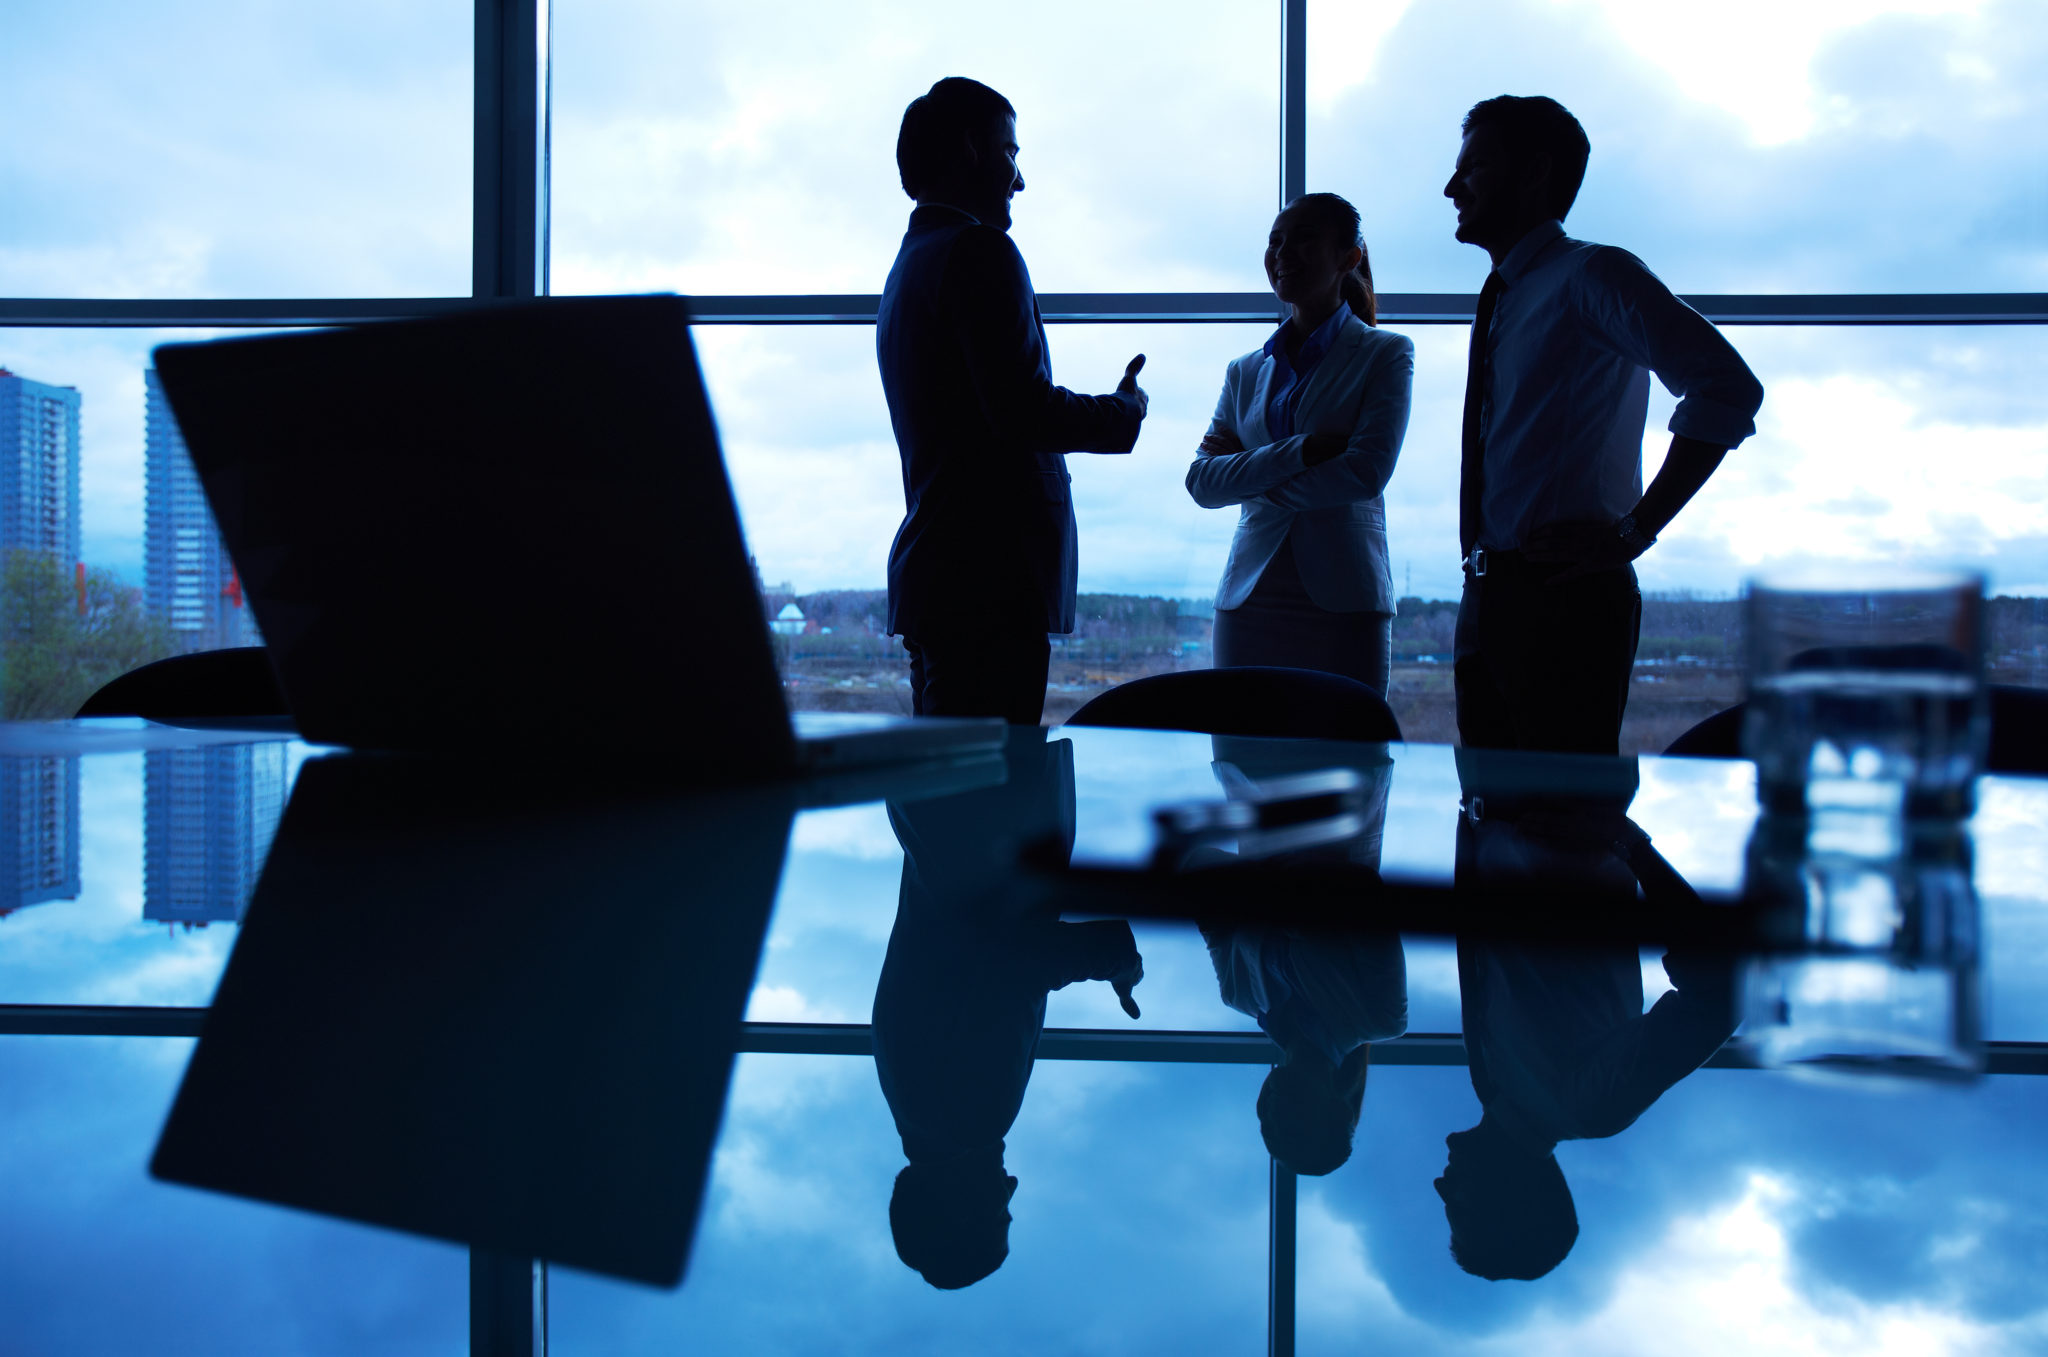 Managing workplace conflict - open communication is key